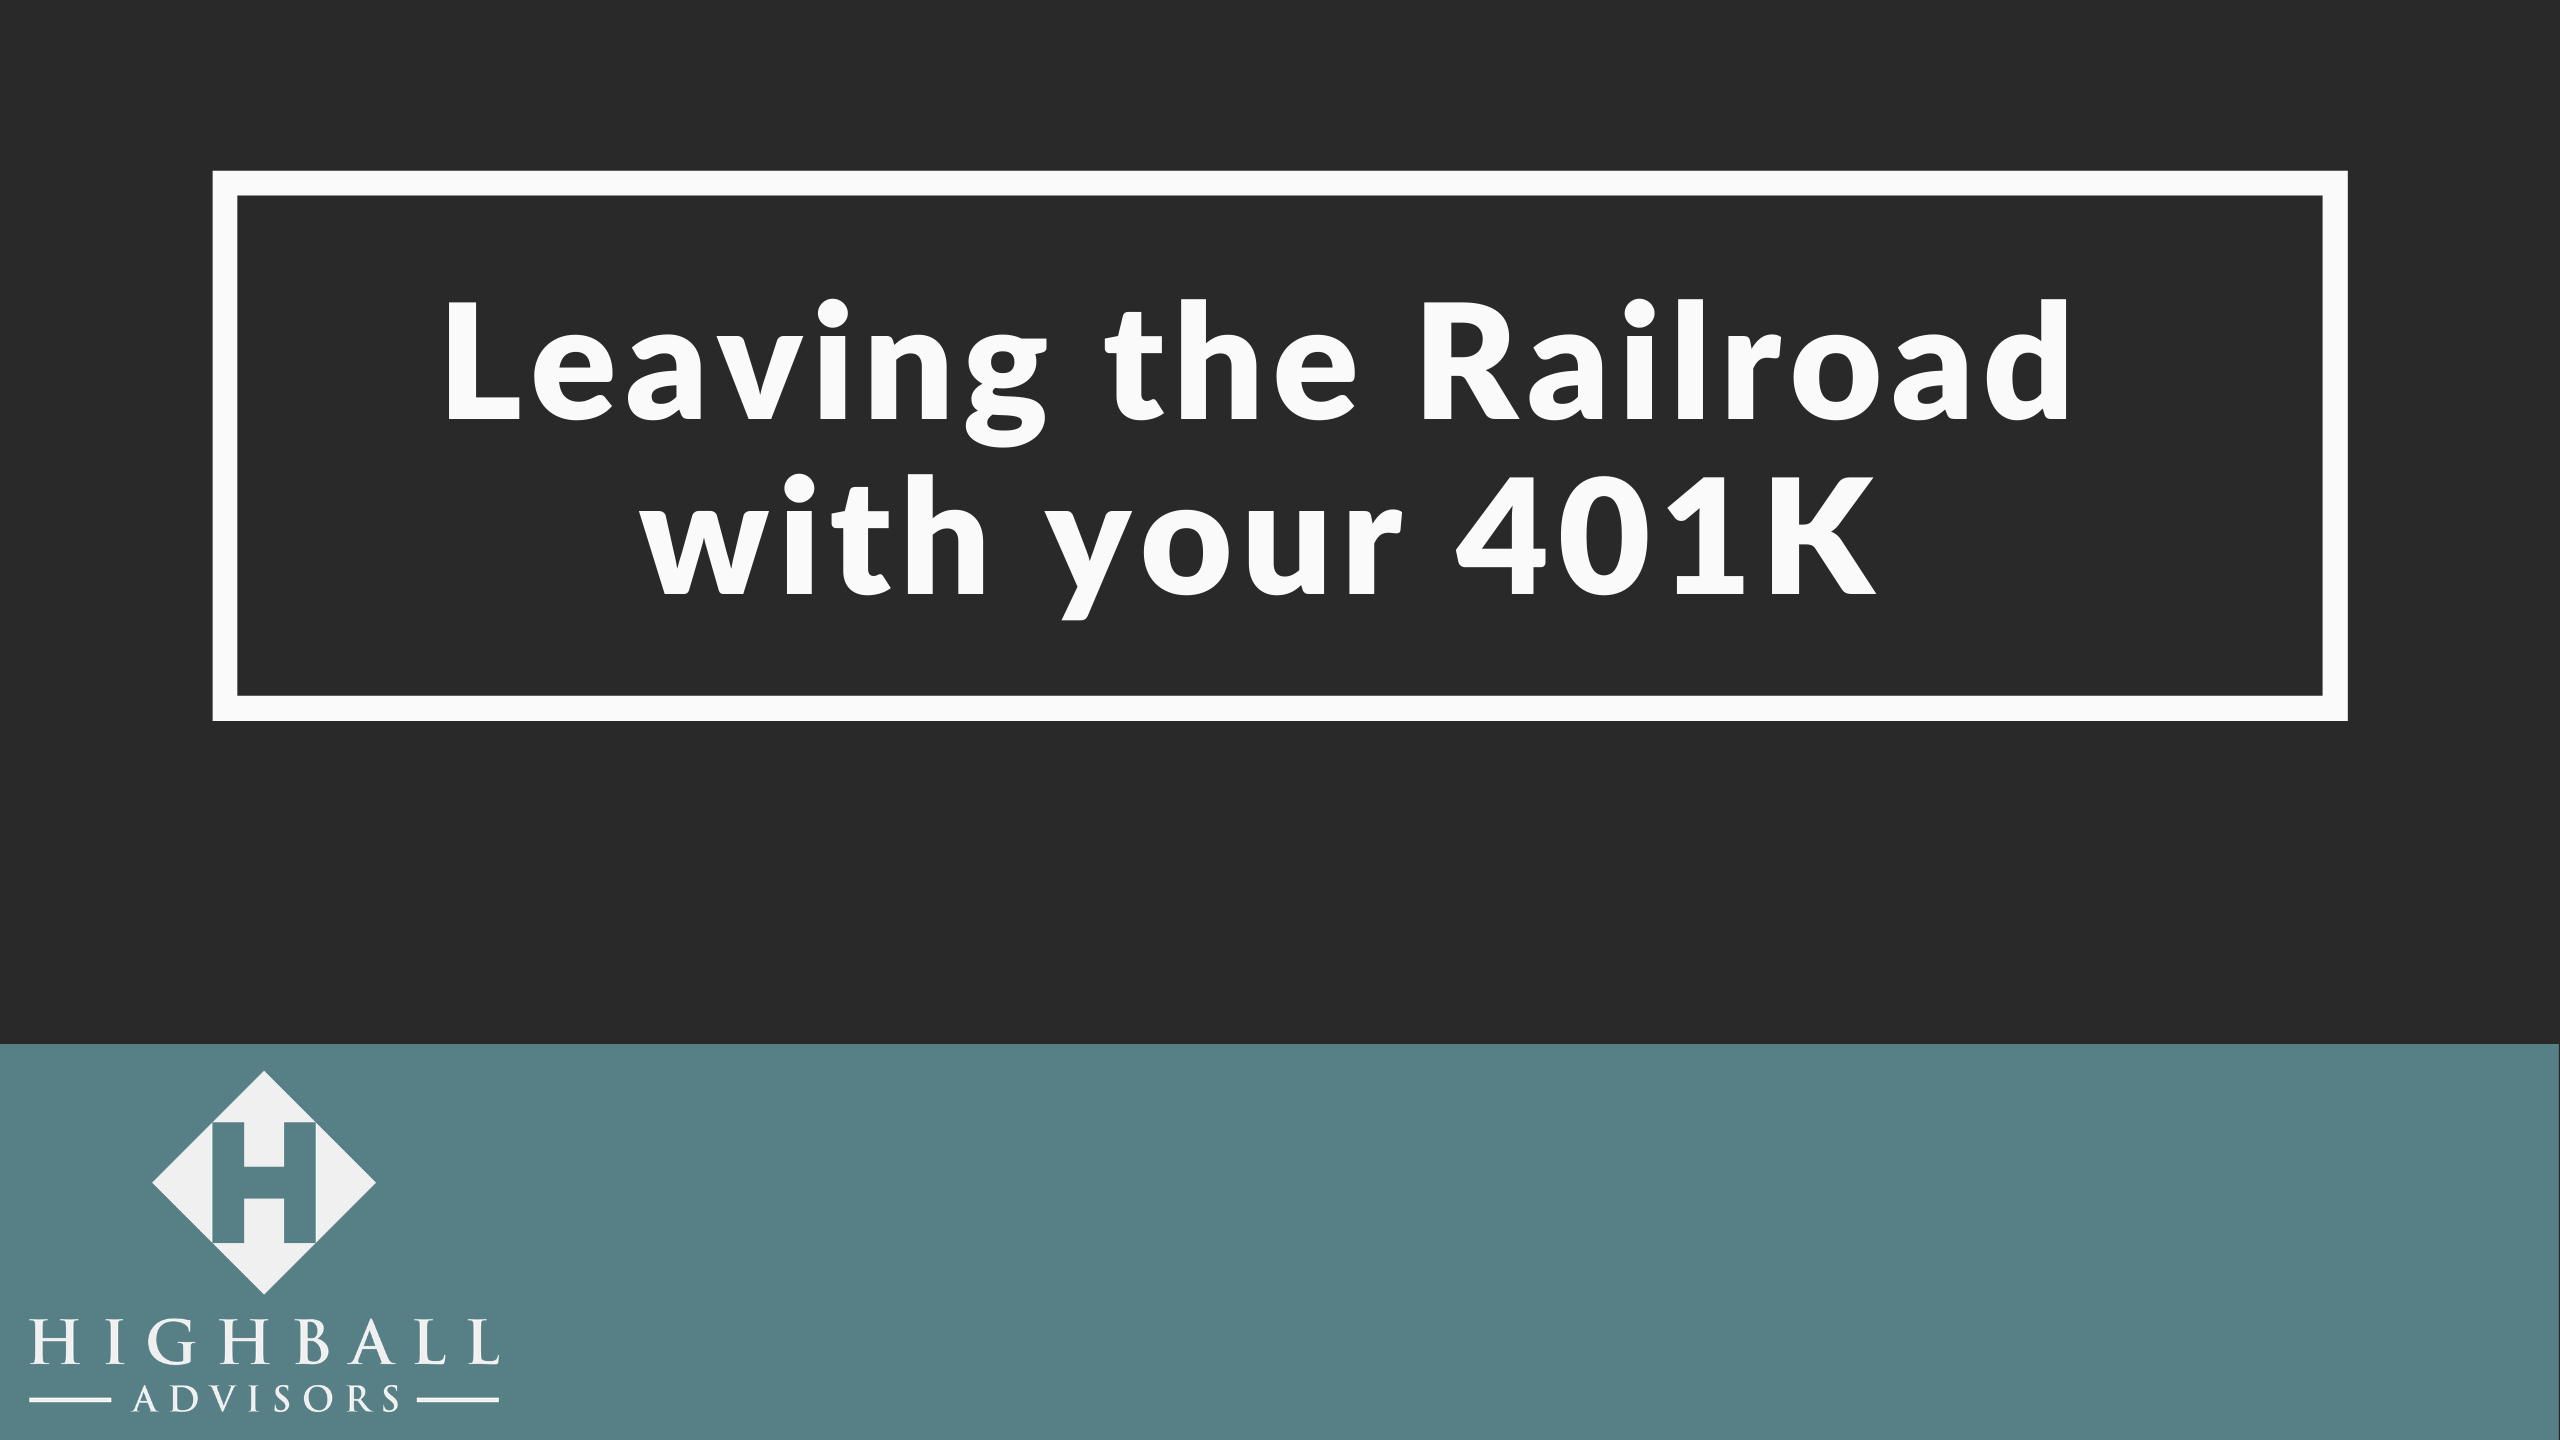 VIDEO: Leaving the Railroad with your 401k Thumbnail